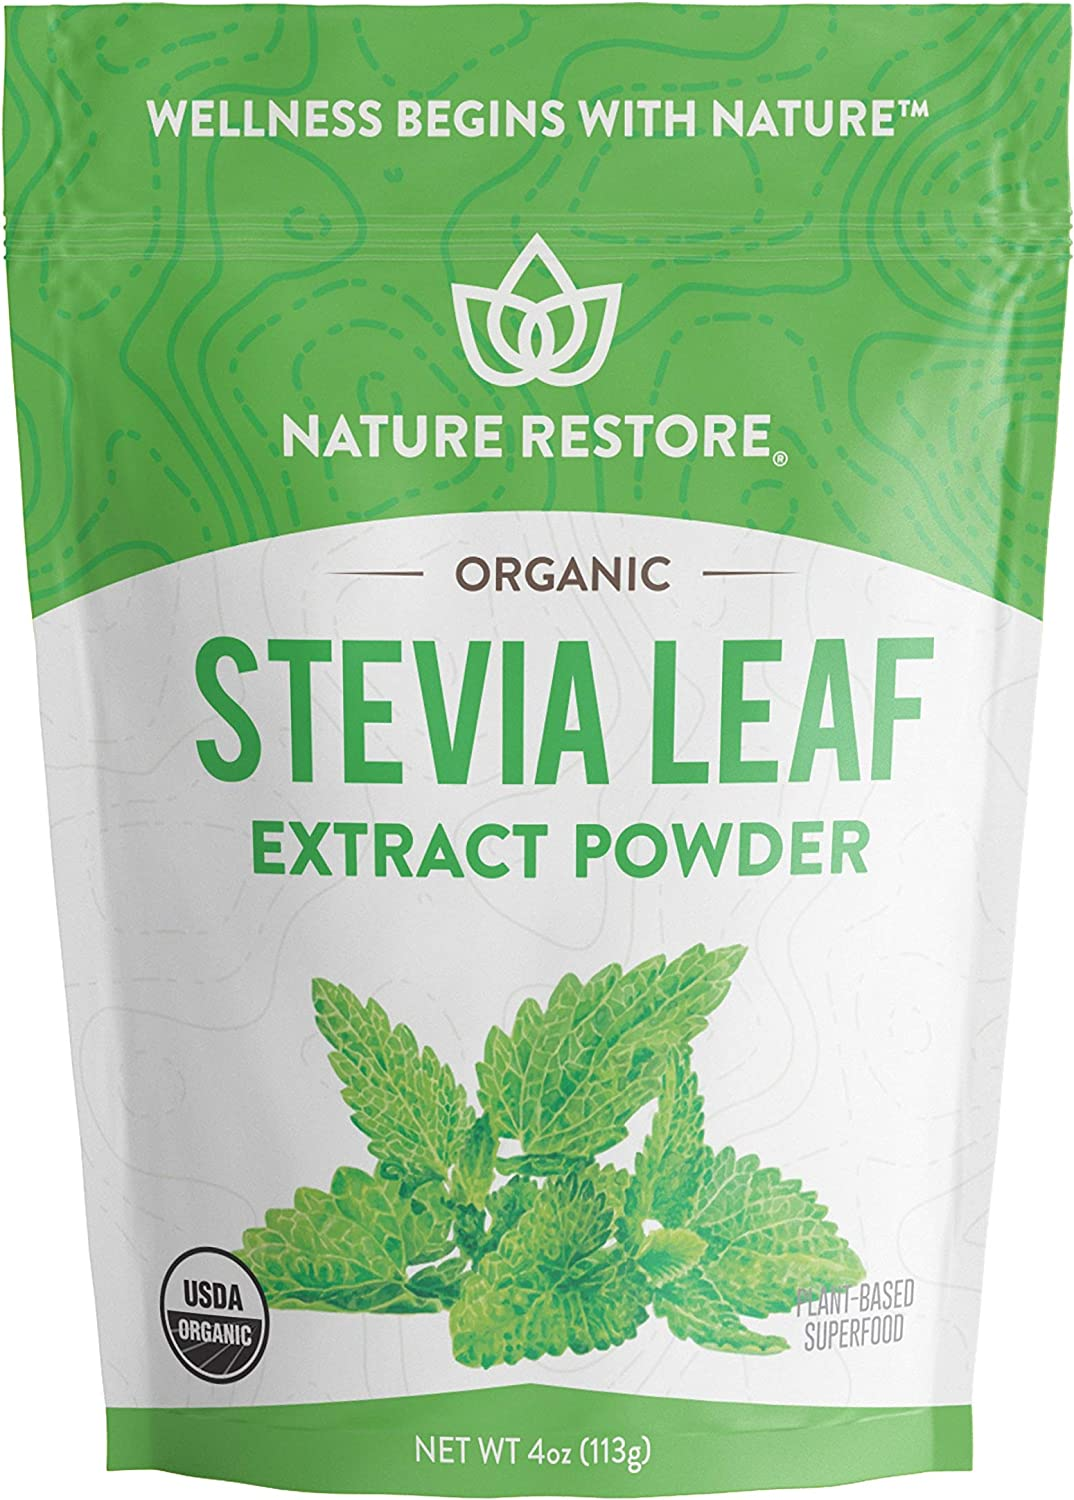 Nature Restore USDA Certified Organic Stevia Leaf Extract Powder, 4 ounces, Non GMO, Gluten Free, 100% Natural Stevia Sweetener